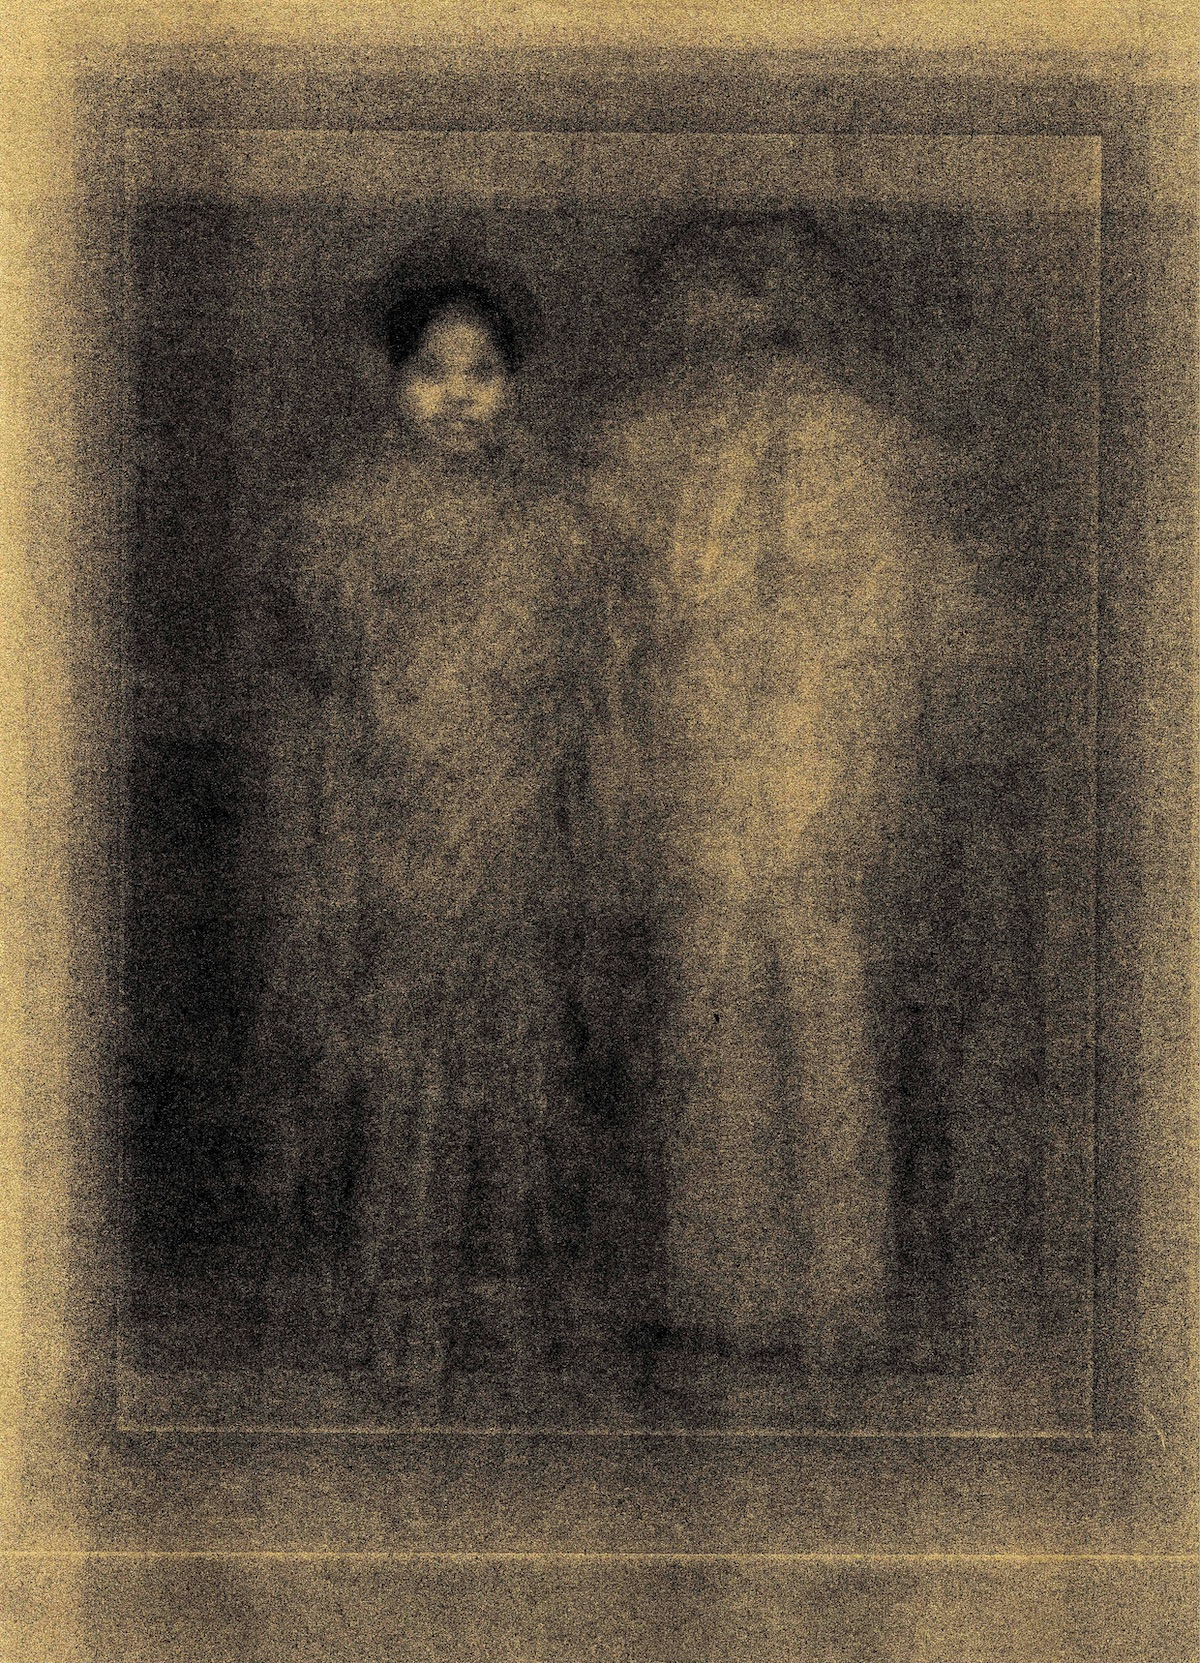 After Image - Couple Standing, a print by Aarati Akkapeddi.